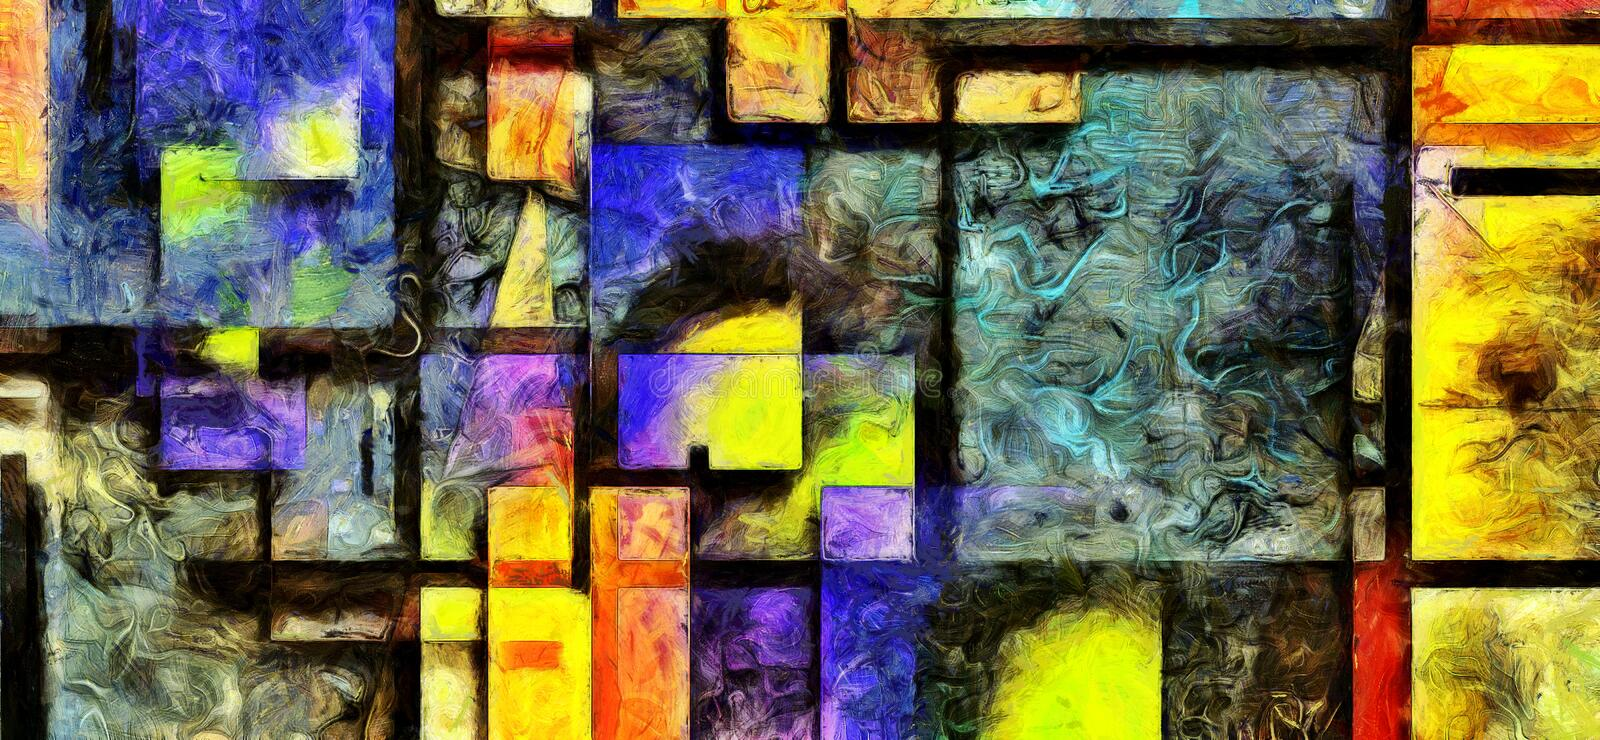 Heavily Textured Digital Abstract Painting stock illustration